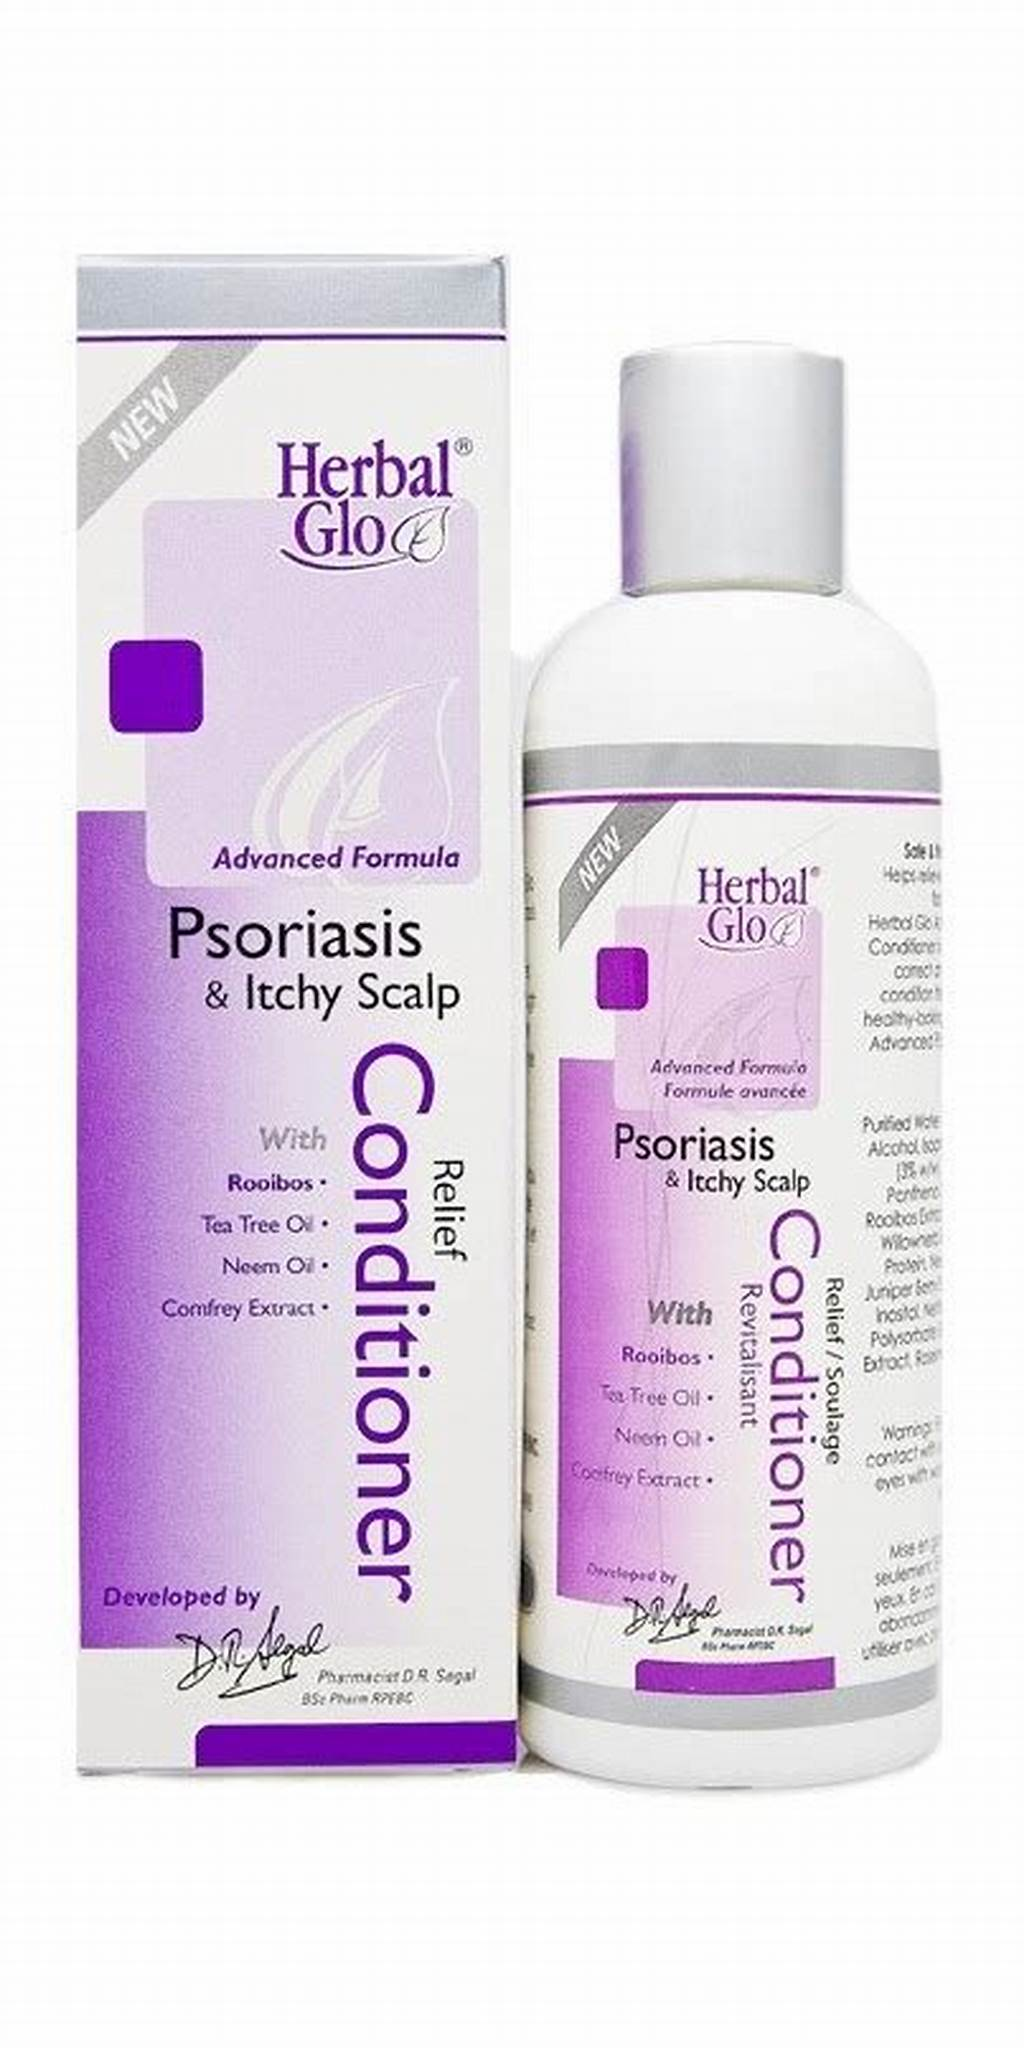 #Buy #Herbal #Glo #Psoriasis #& #Itchy #Scalp #Conditioner #At #Well